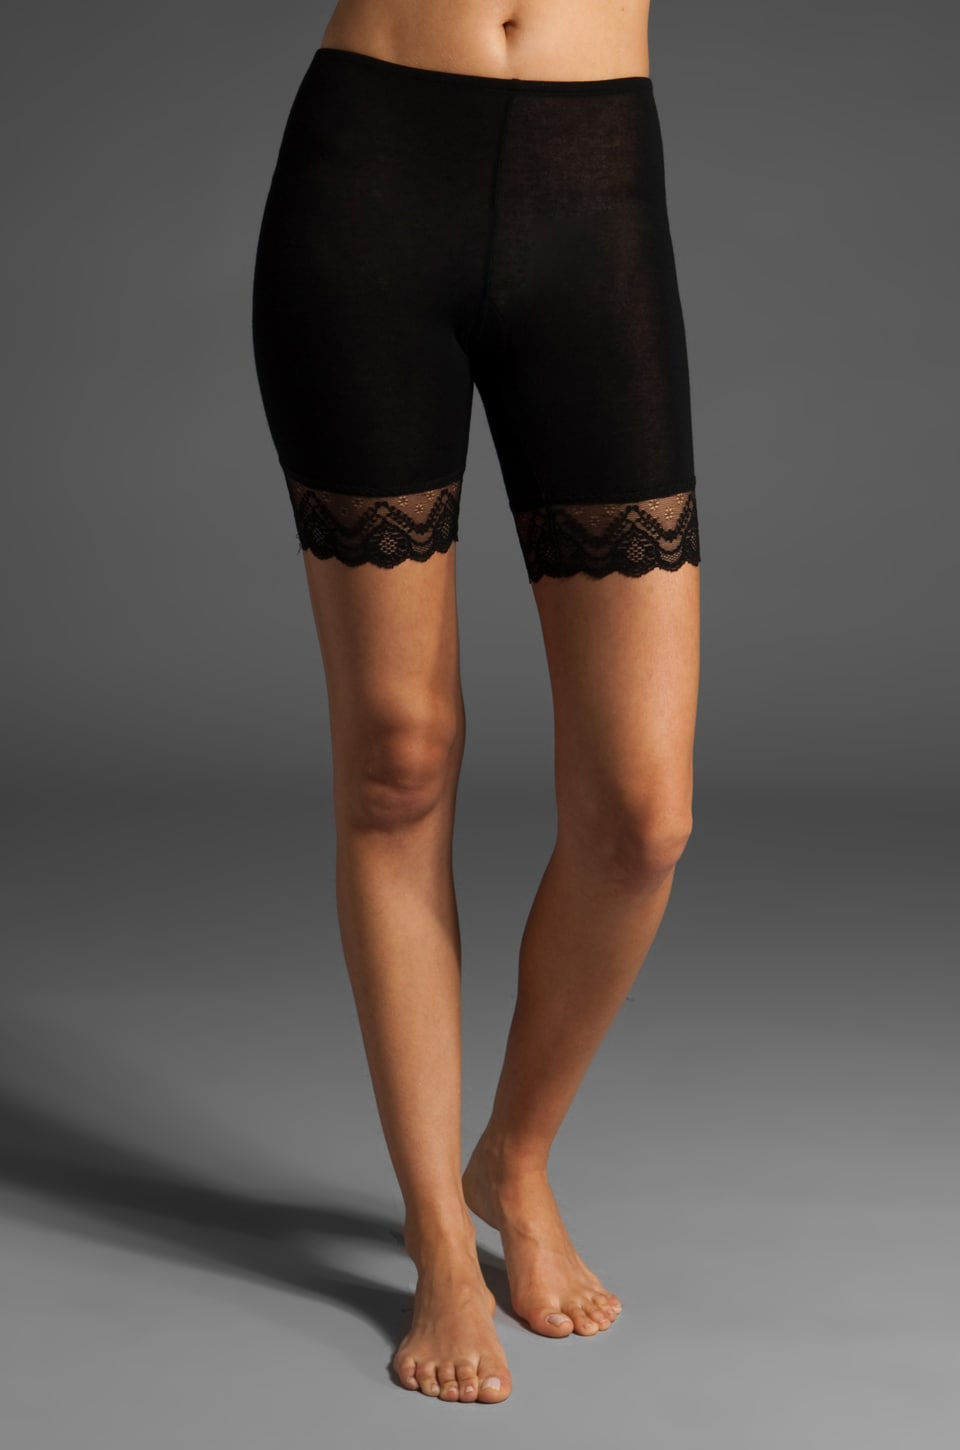 Only Hearts Feather Weight Lace Trim Mini Bike Short in Black